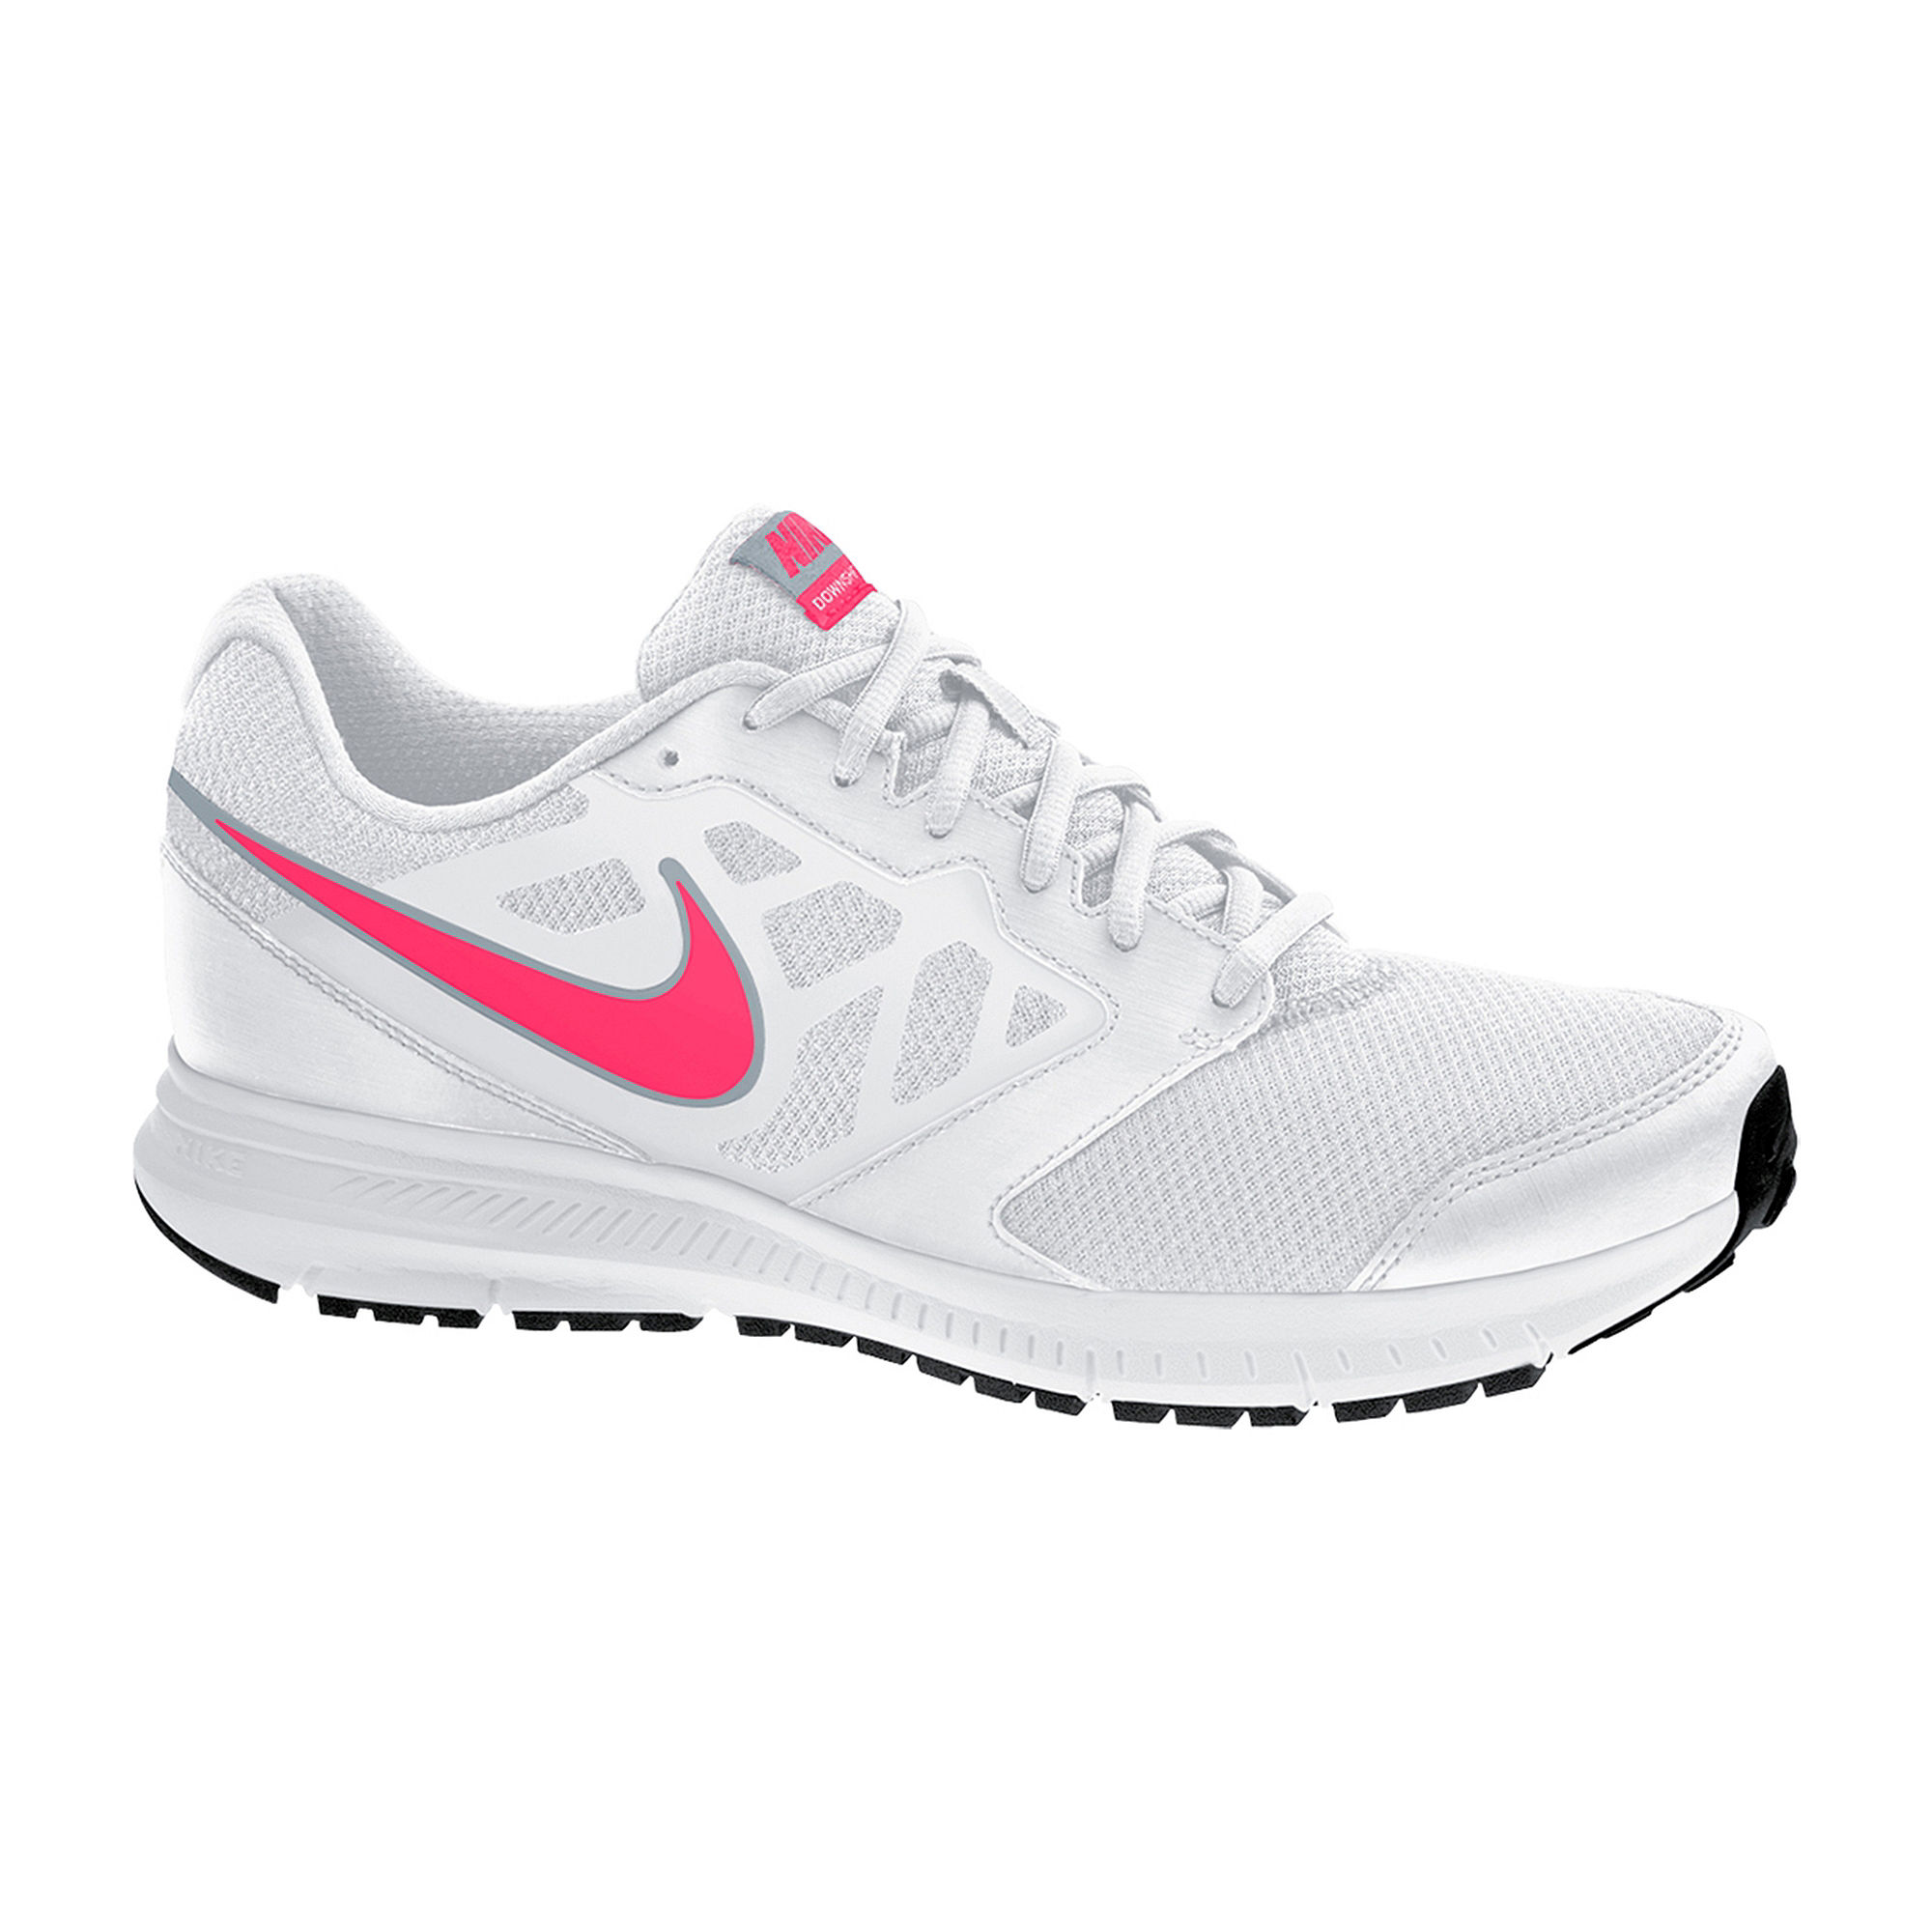 Downshifter 6, Womens Running Nike